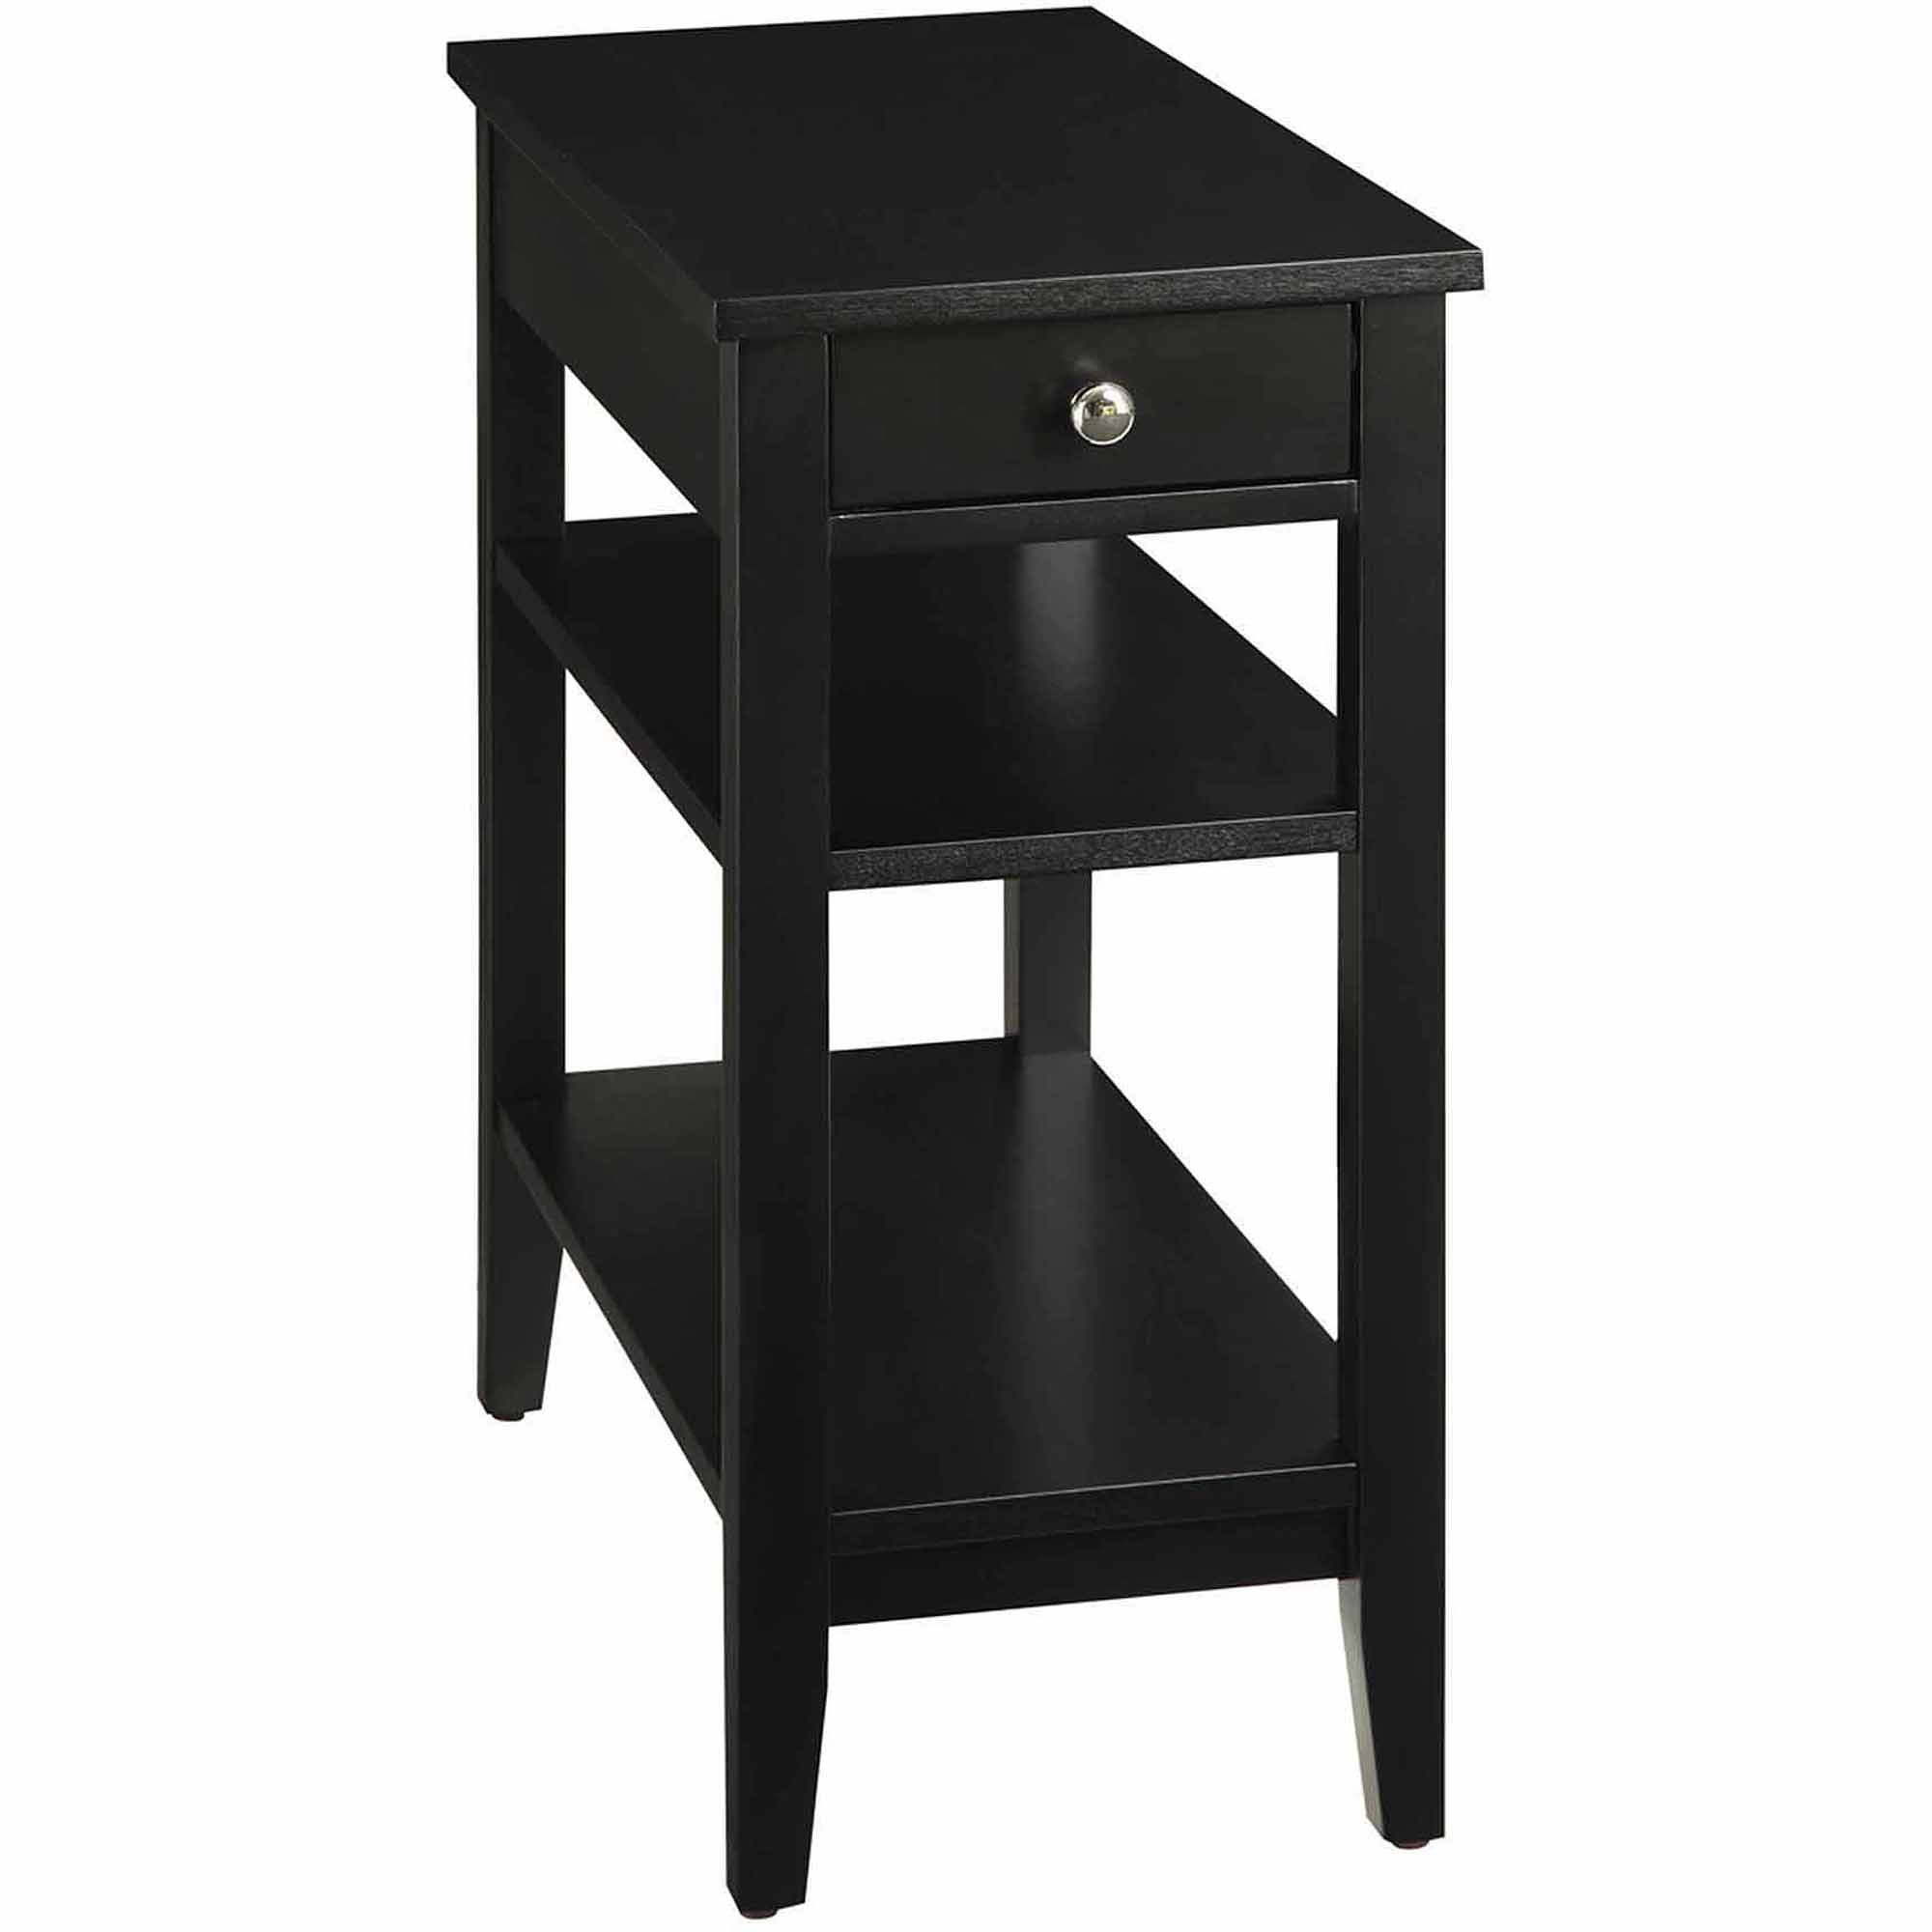 ashley laflorn end table the outrageous amazing high chair for accent tables with drawers tall storage best elegant black wood tier drawer your living room design inch linens